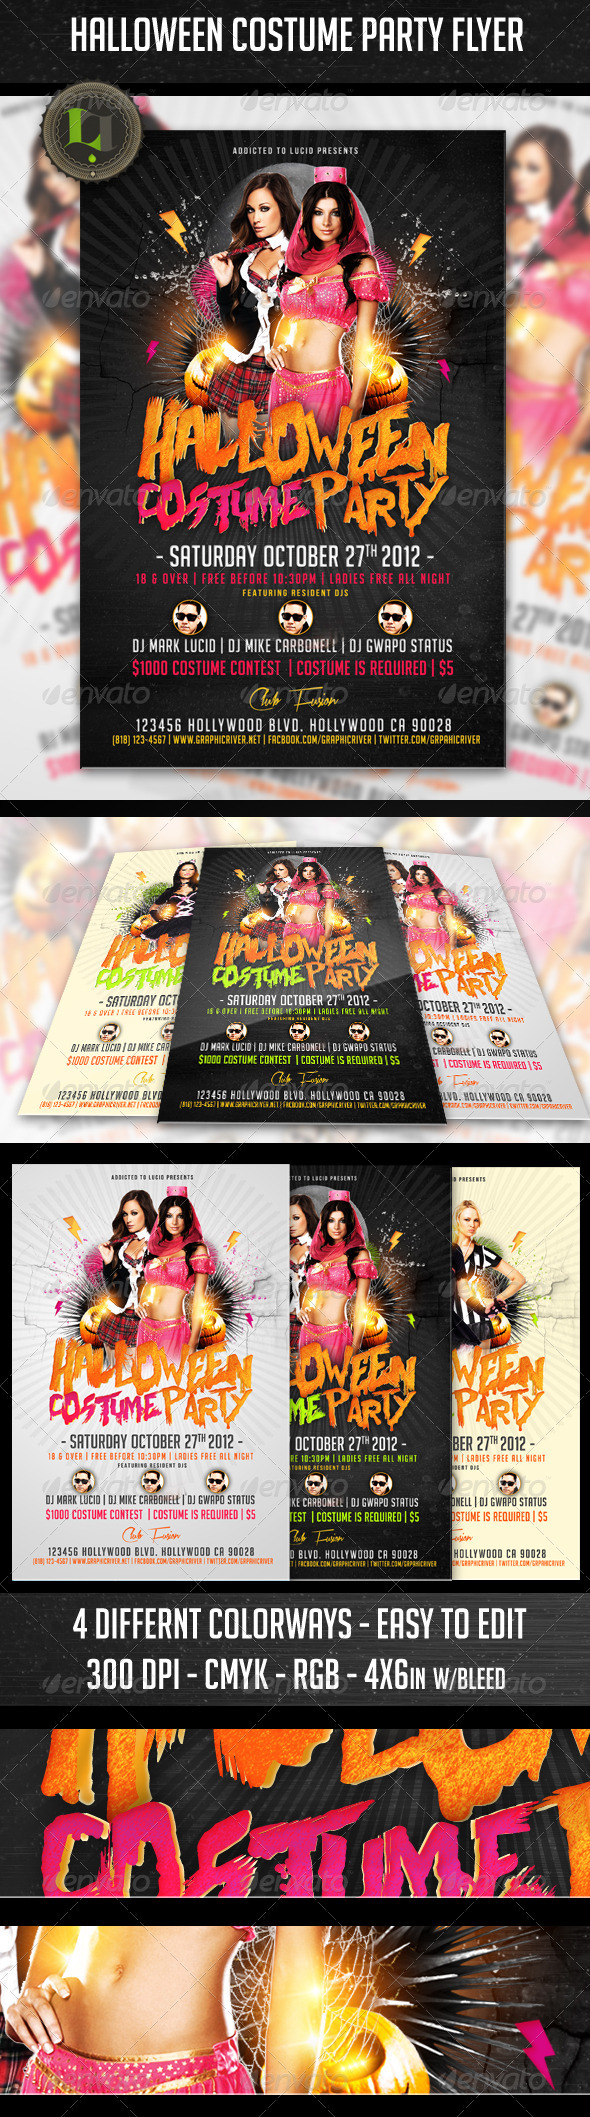 halloween costume party flyer print ad templates